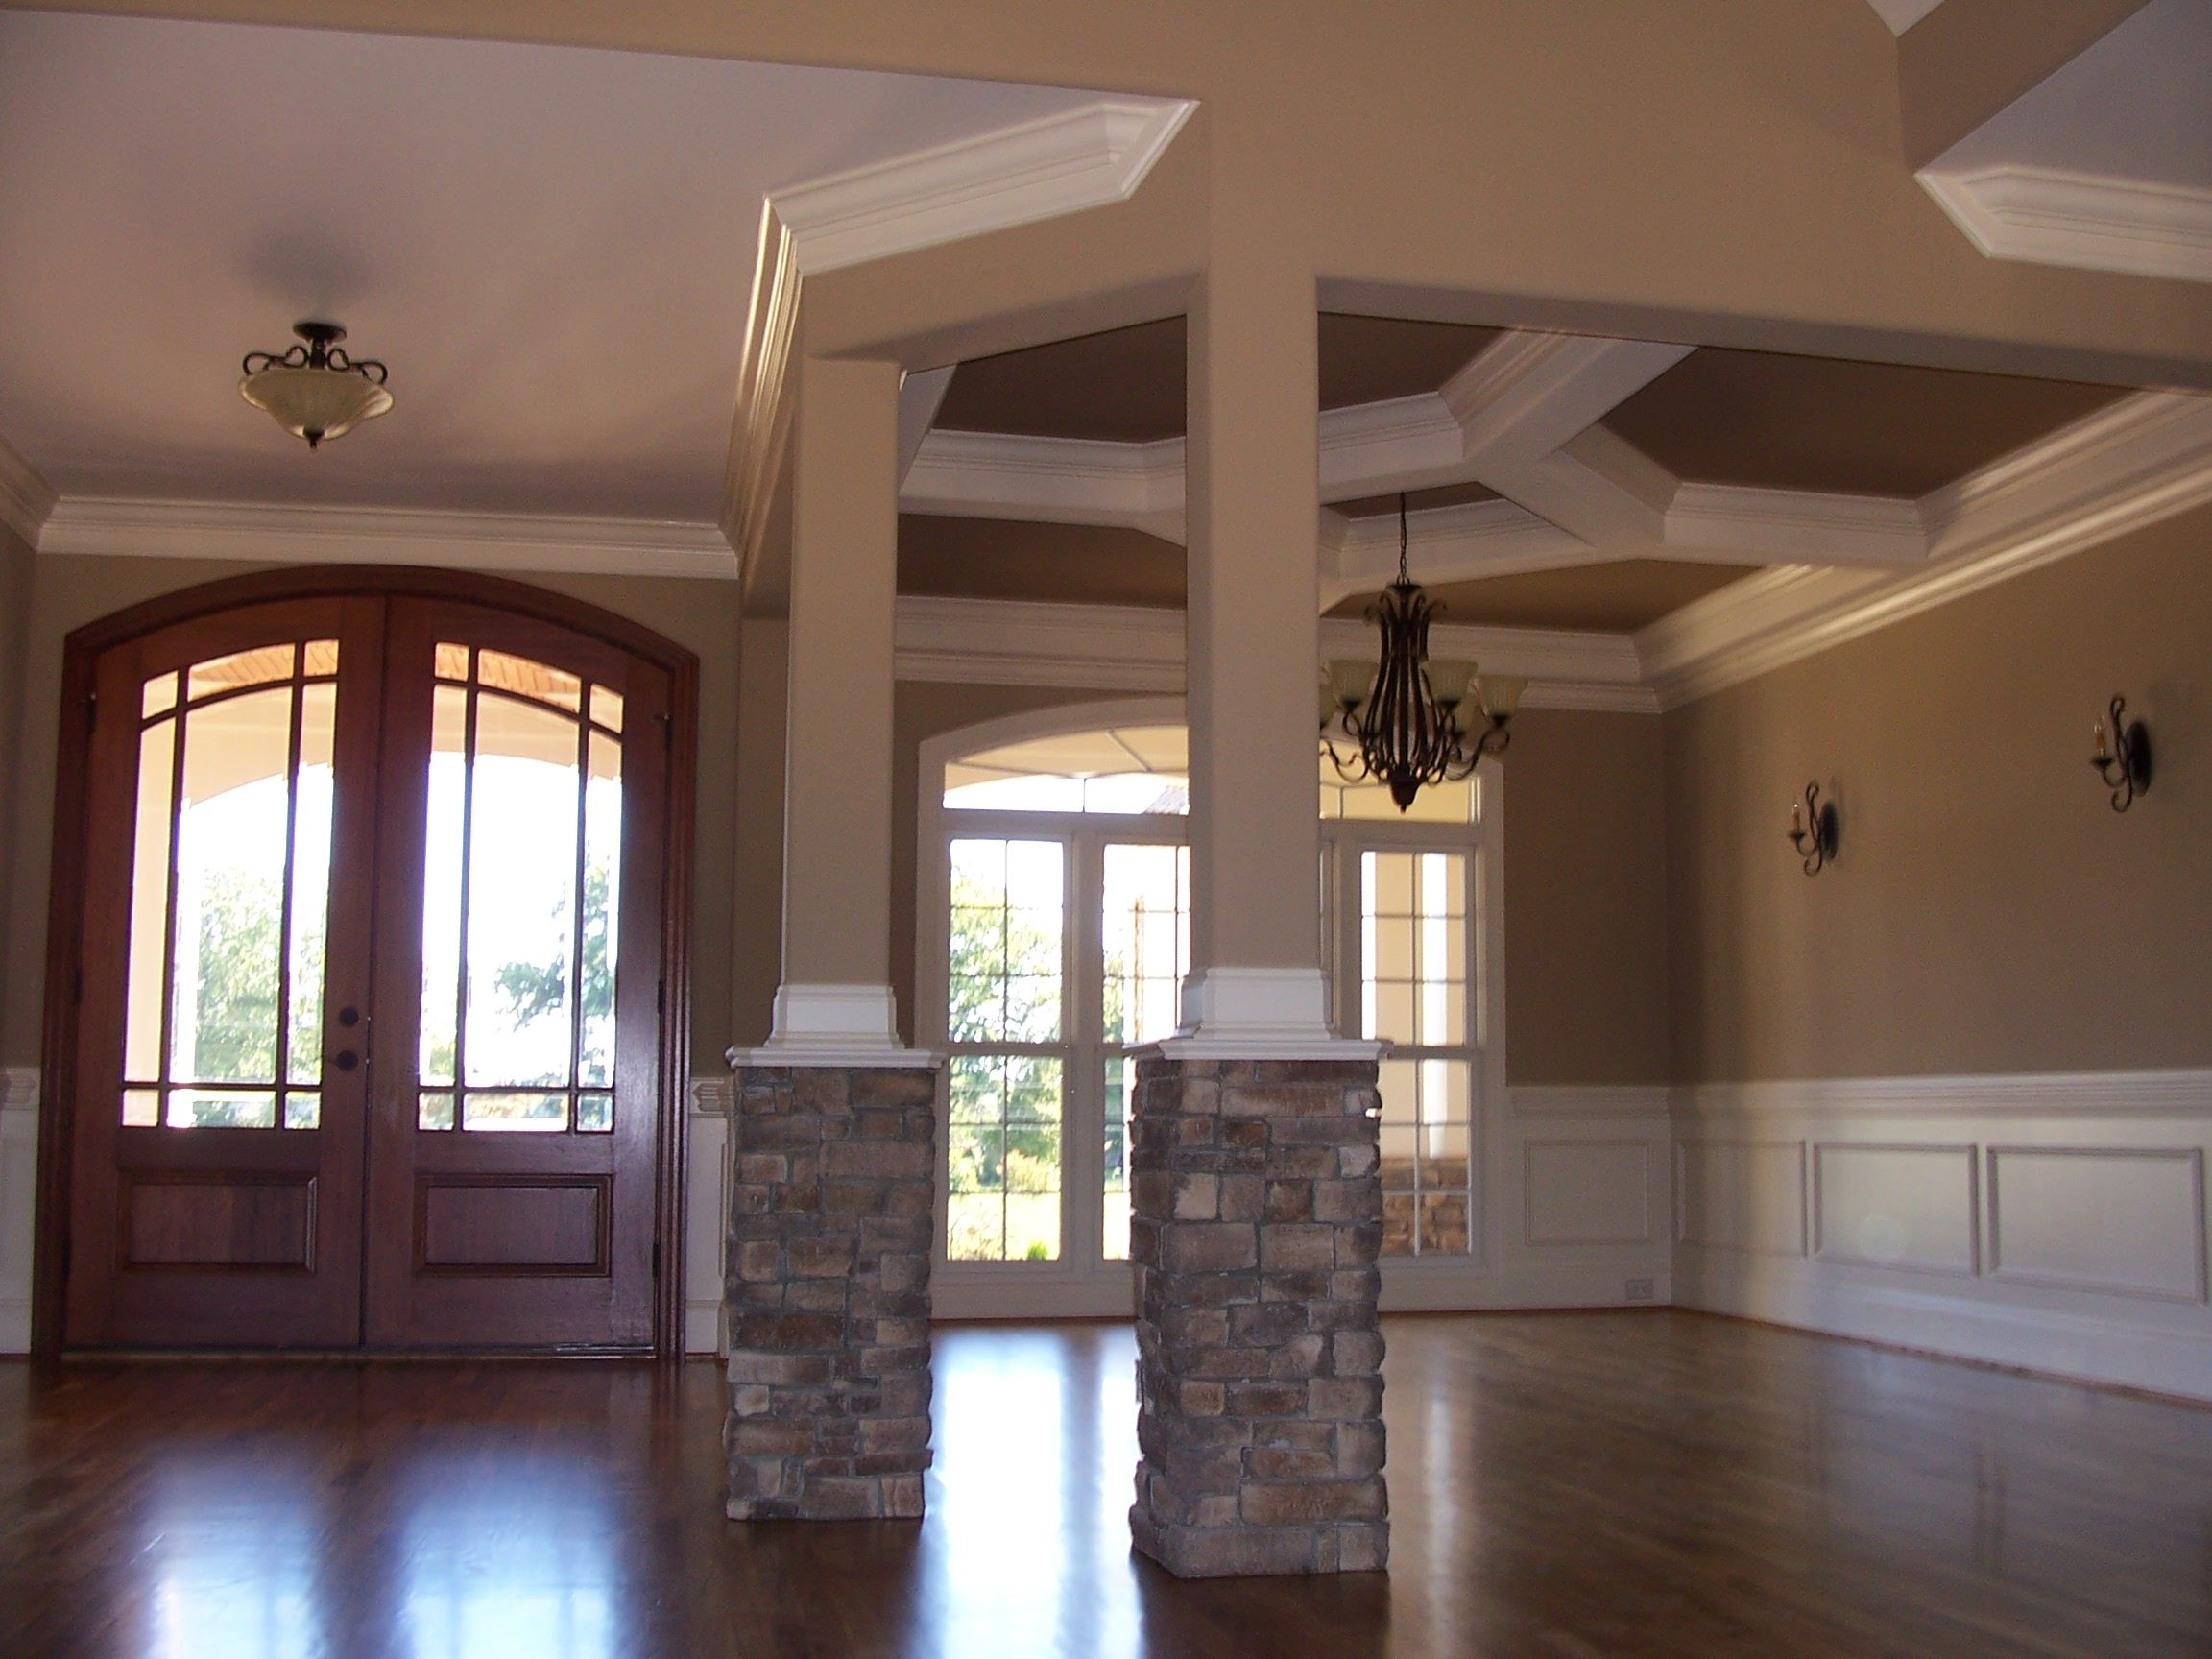 Column Molding Ideas Pictures Of Interior Paint Colors Phone 7047468170 Fax